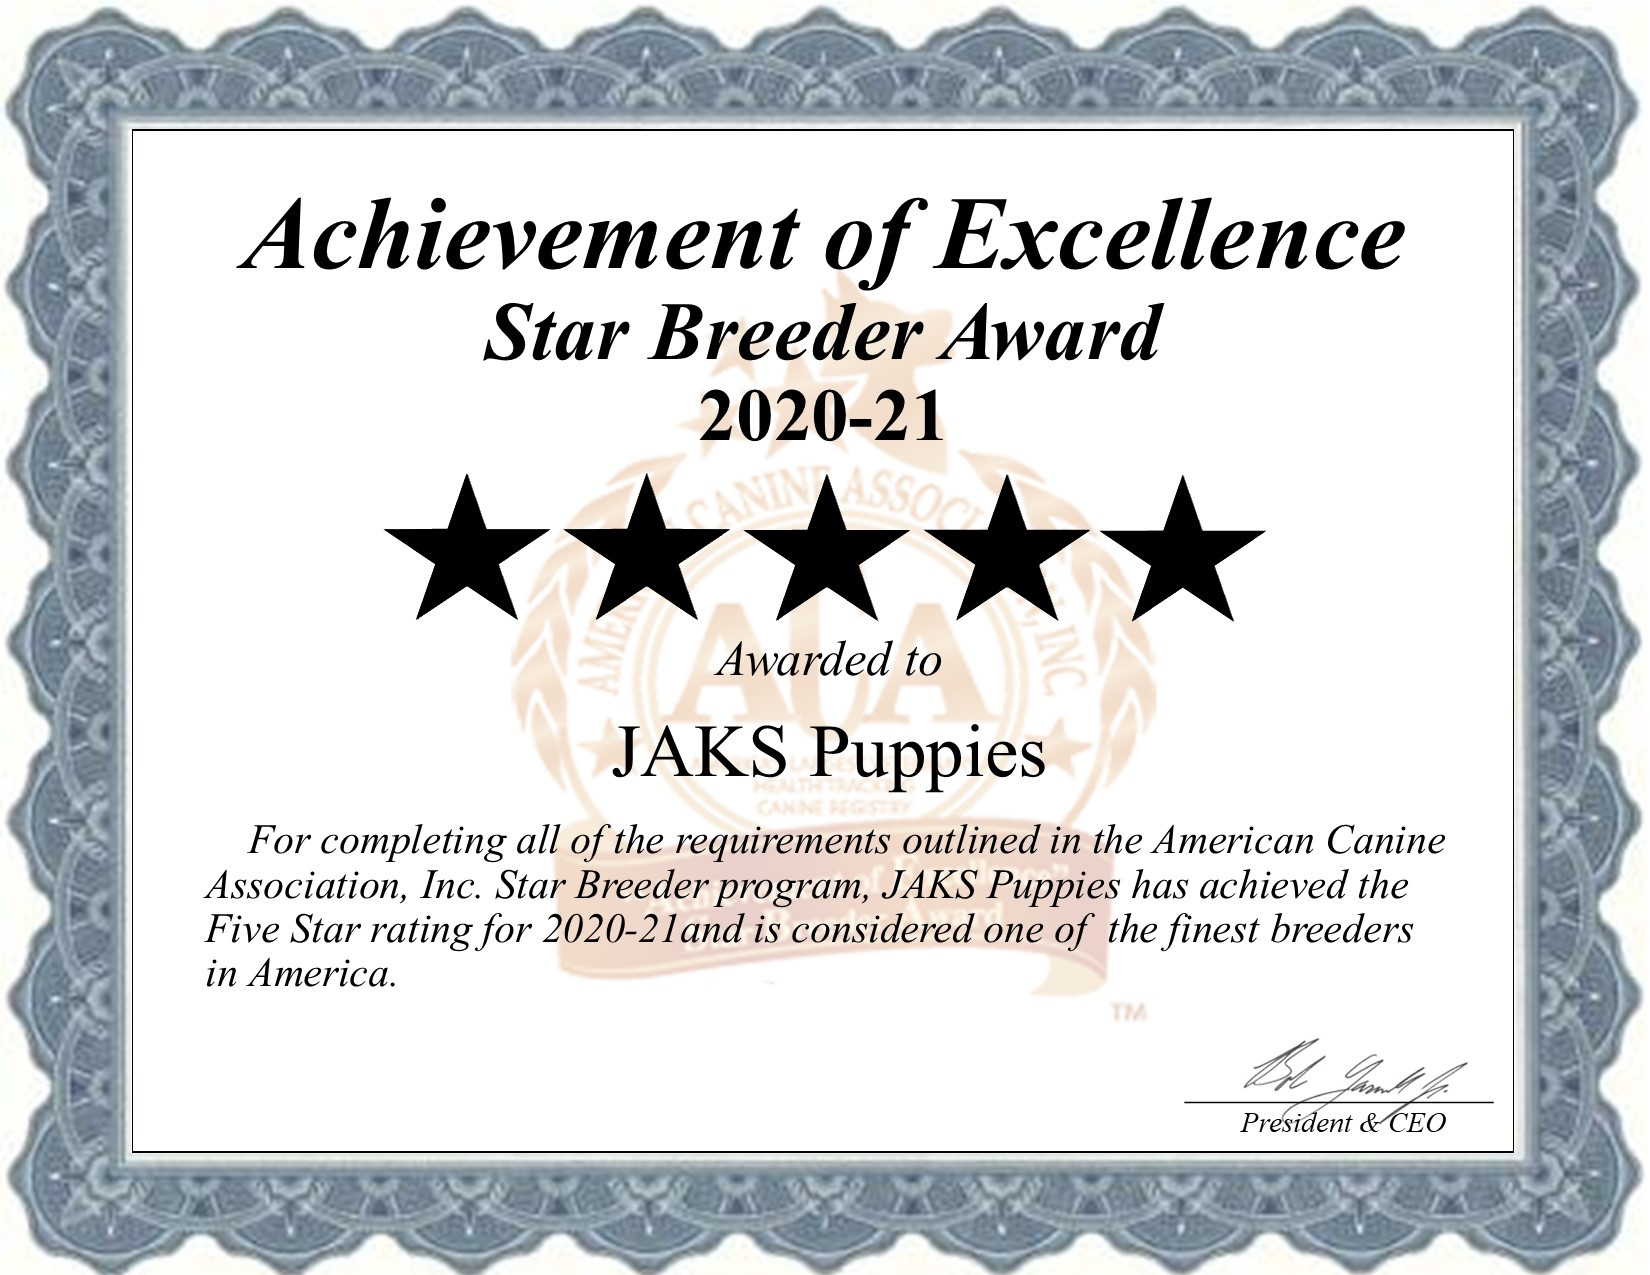 JAKS Puppies, Britt Iowa, dog, breeder, star, certificate, JAKS Puppies-Britt Iowa, 42b0271, IA, Iowa, puppy, dog, kennels, mill, puppymill, usda, 5-star, aca, ica, registered, Yorkshite, 42-B-0271